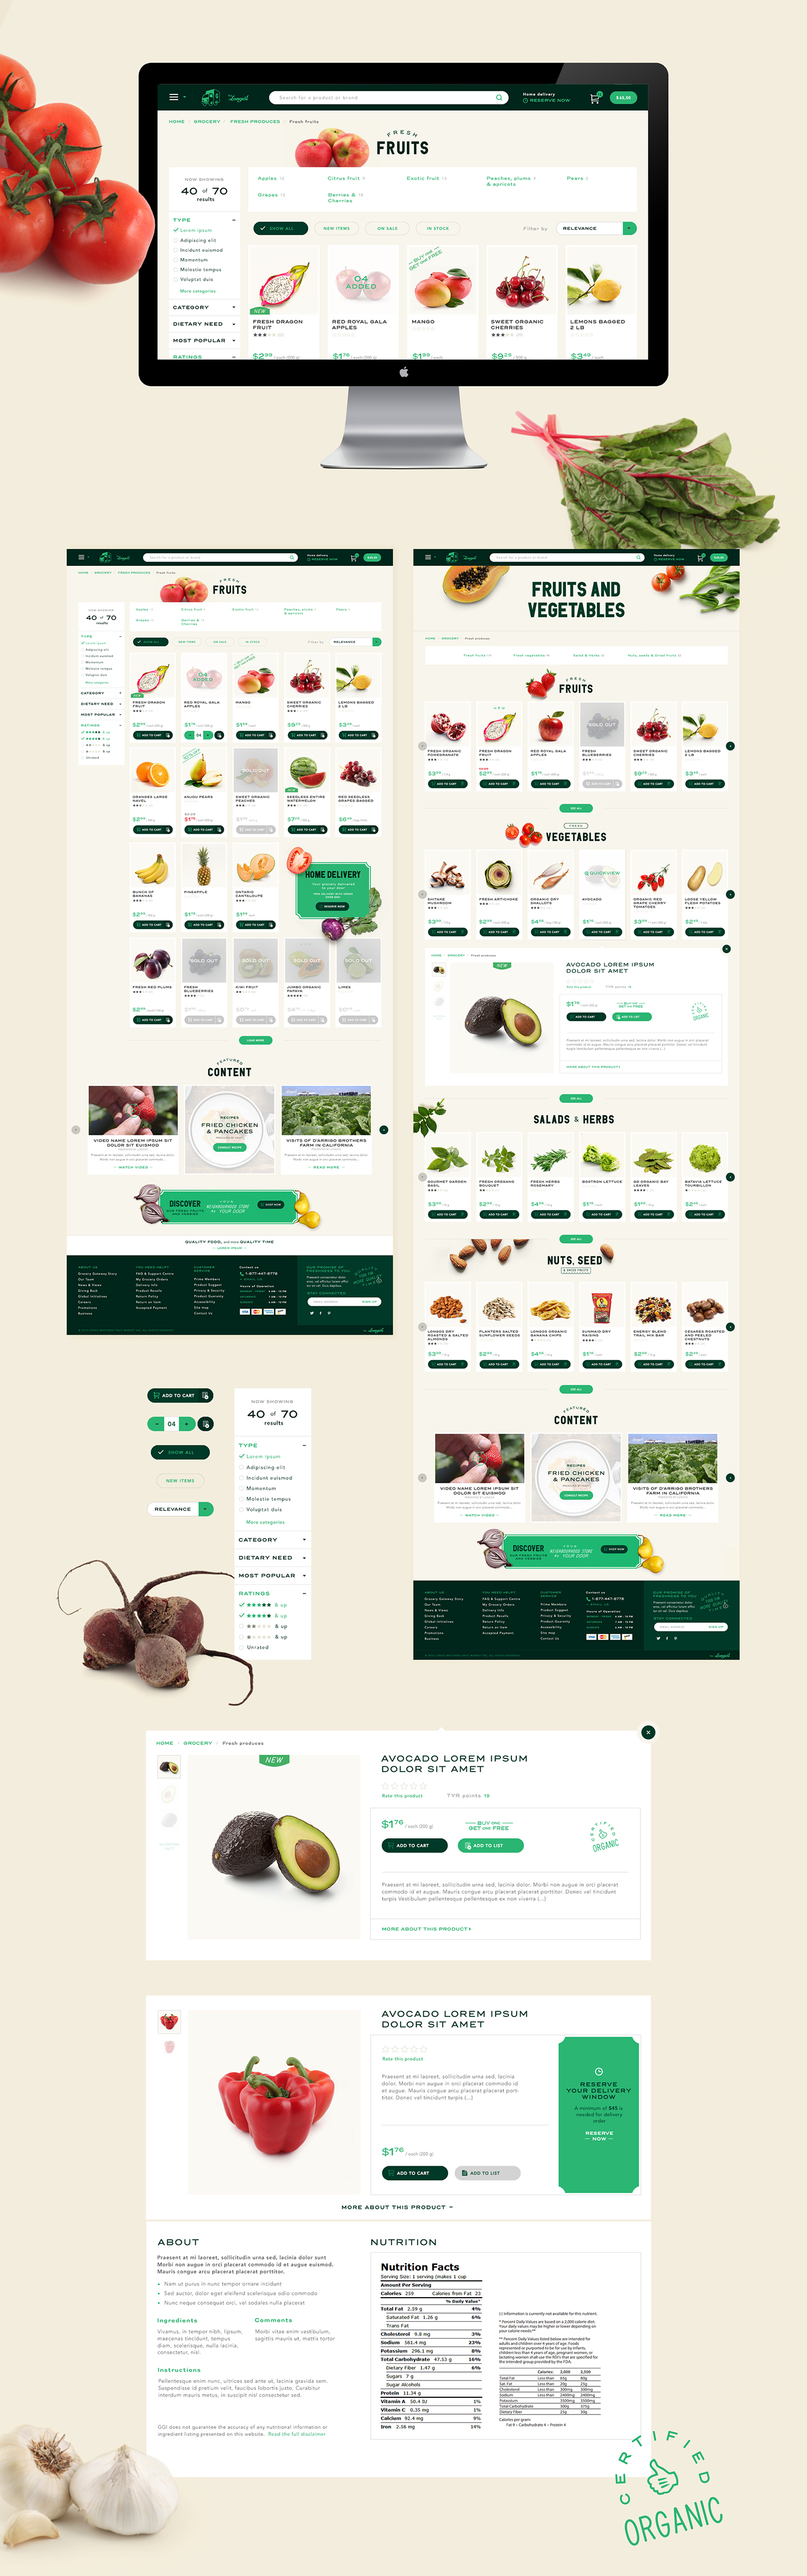 Art direction and web design for Grocery Gateway following